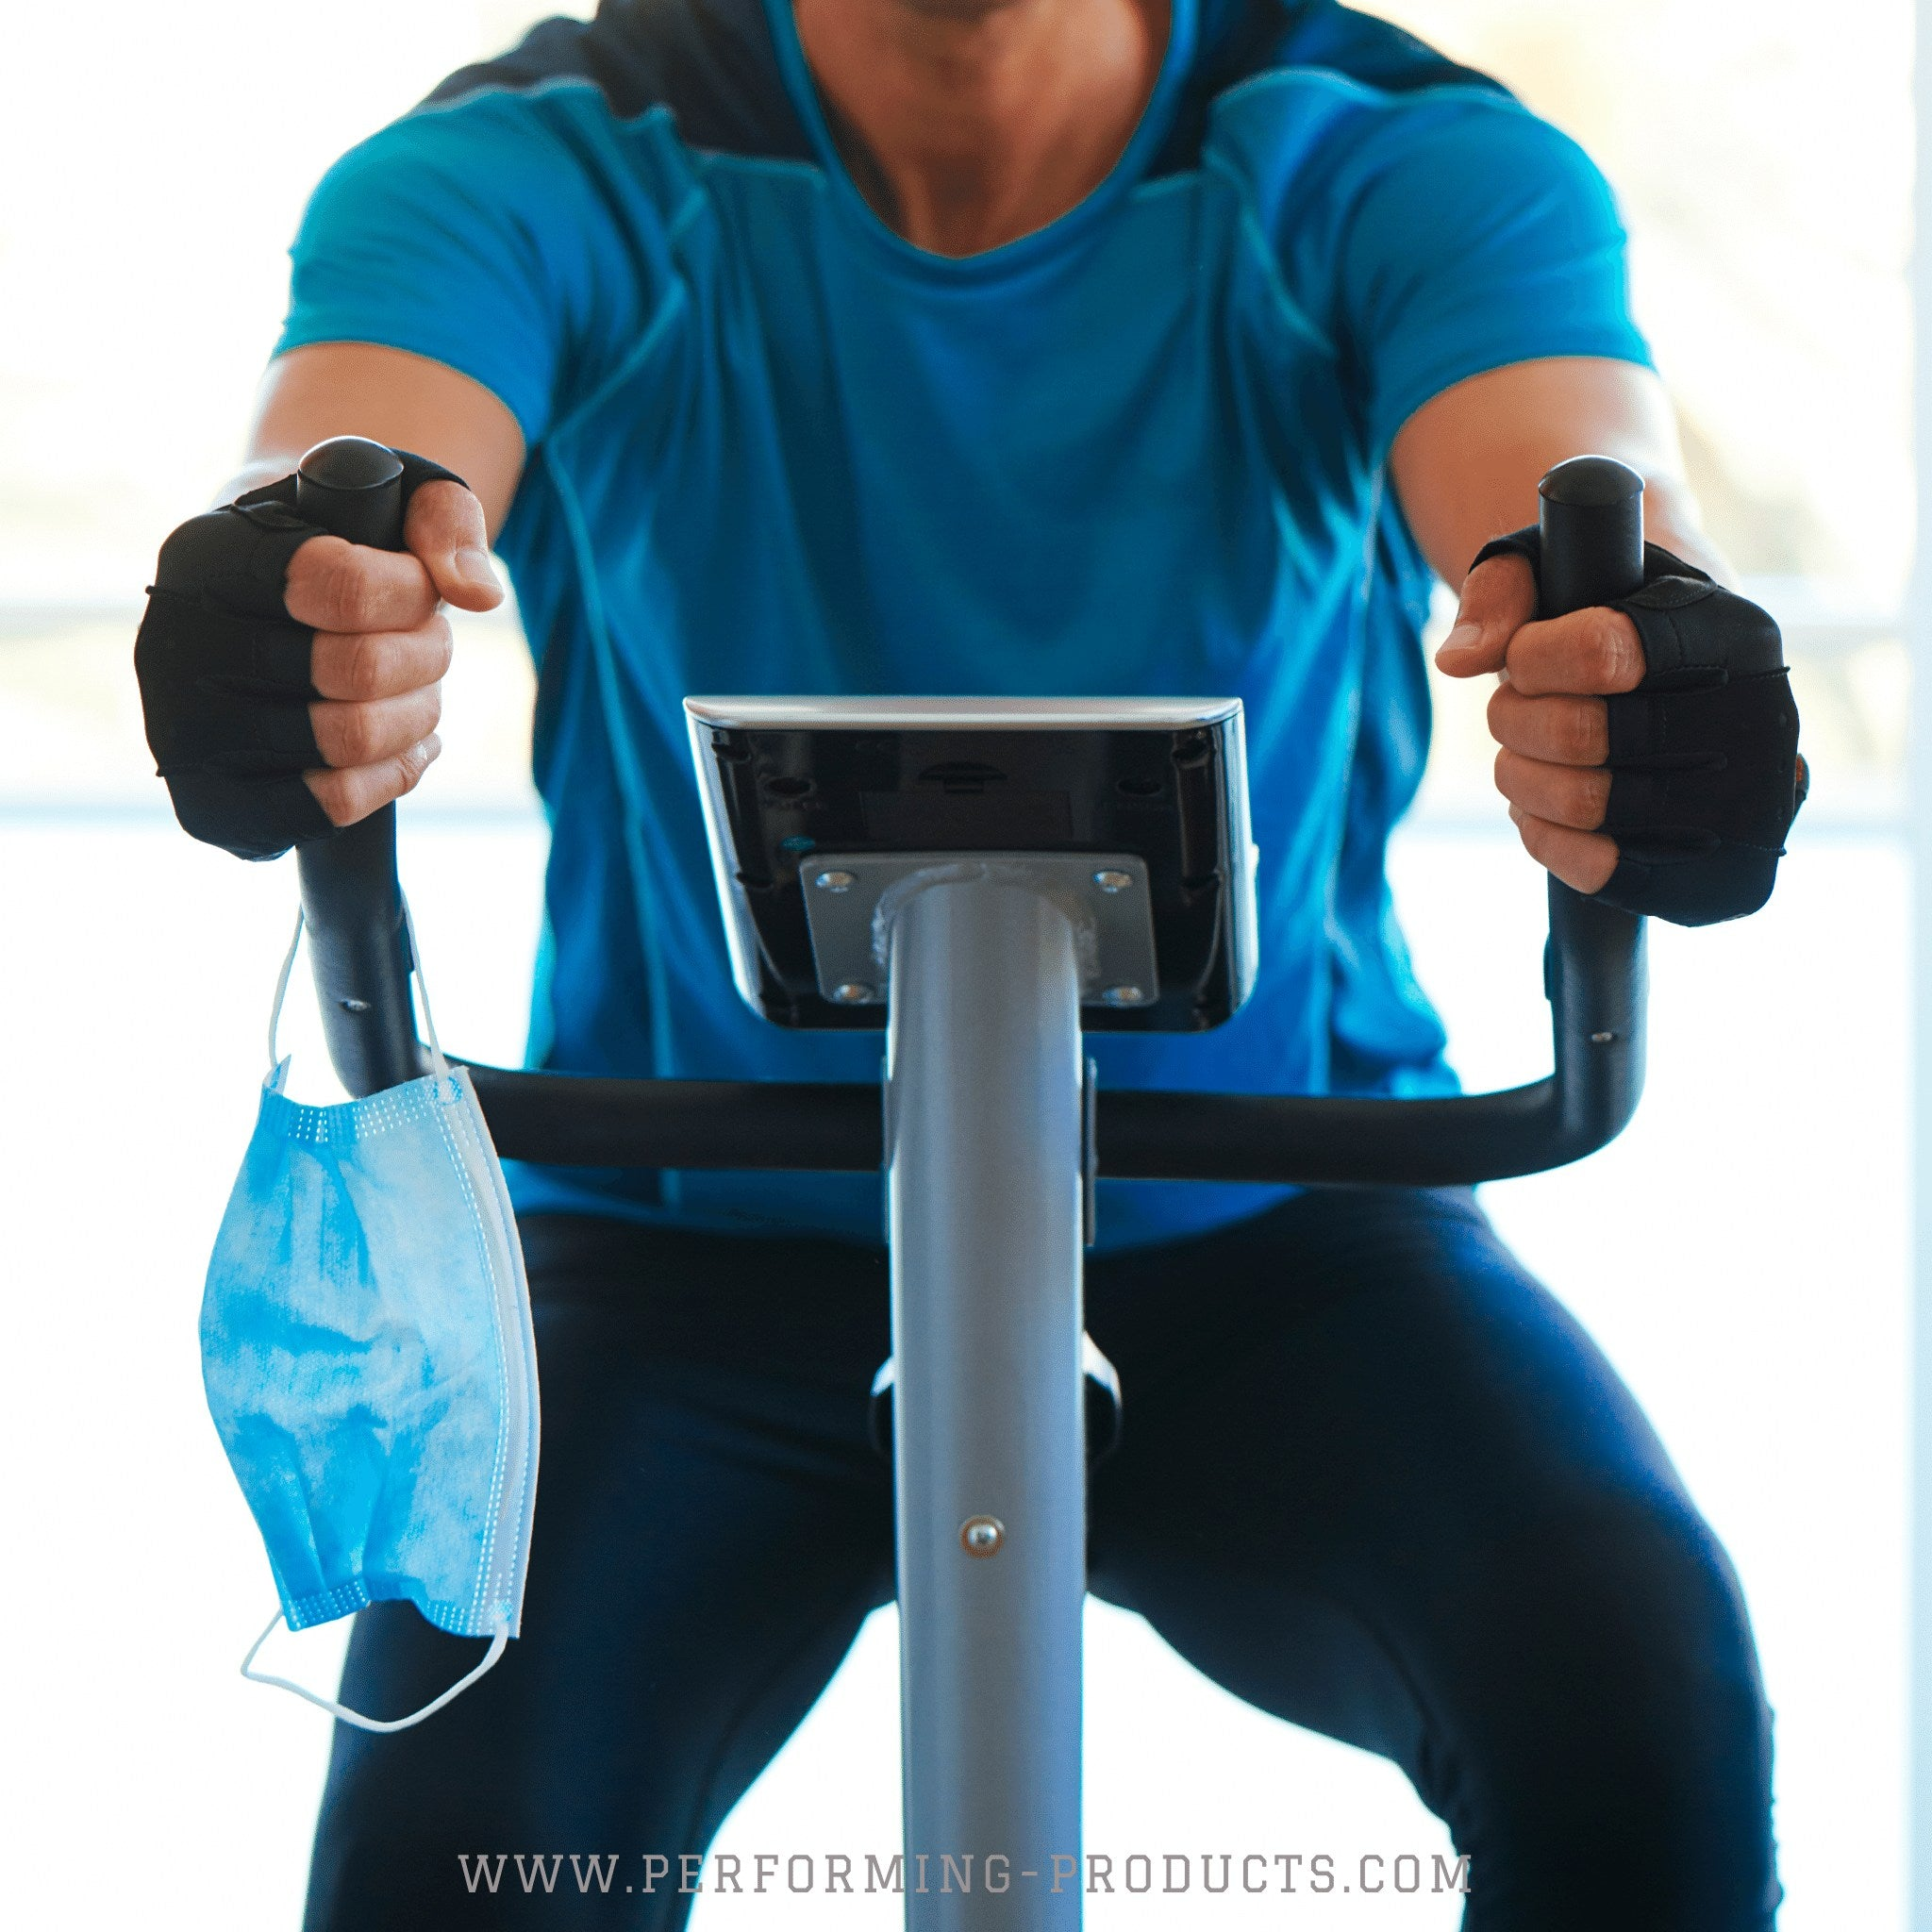 Why should people not wear a face mask during exercise?